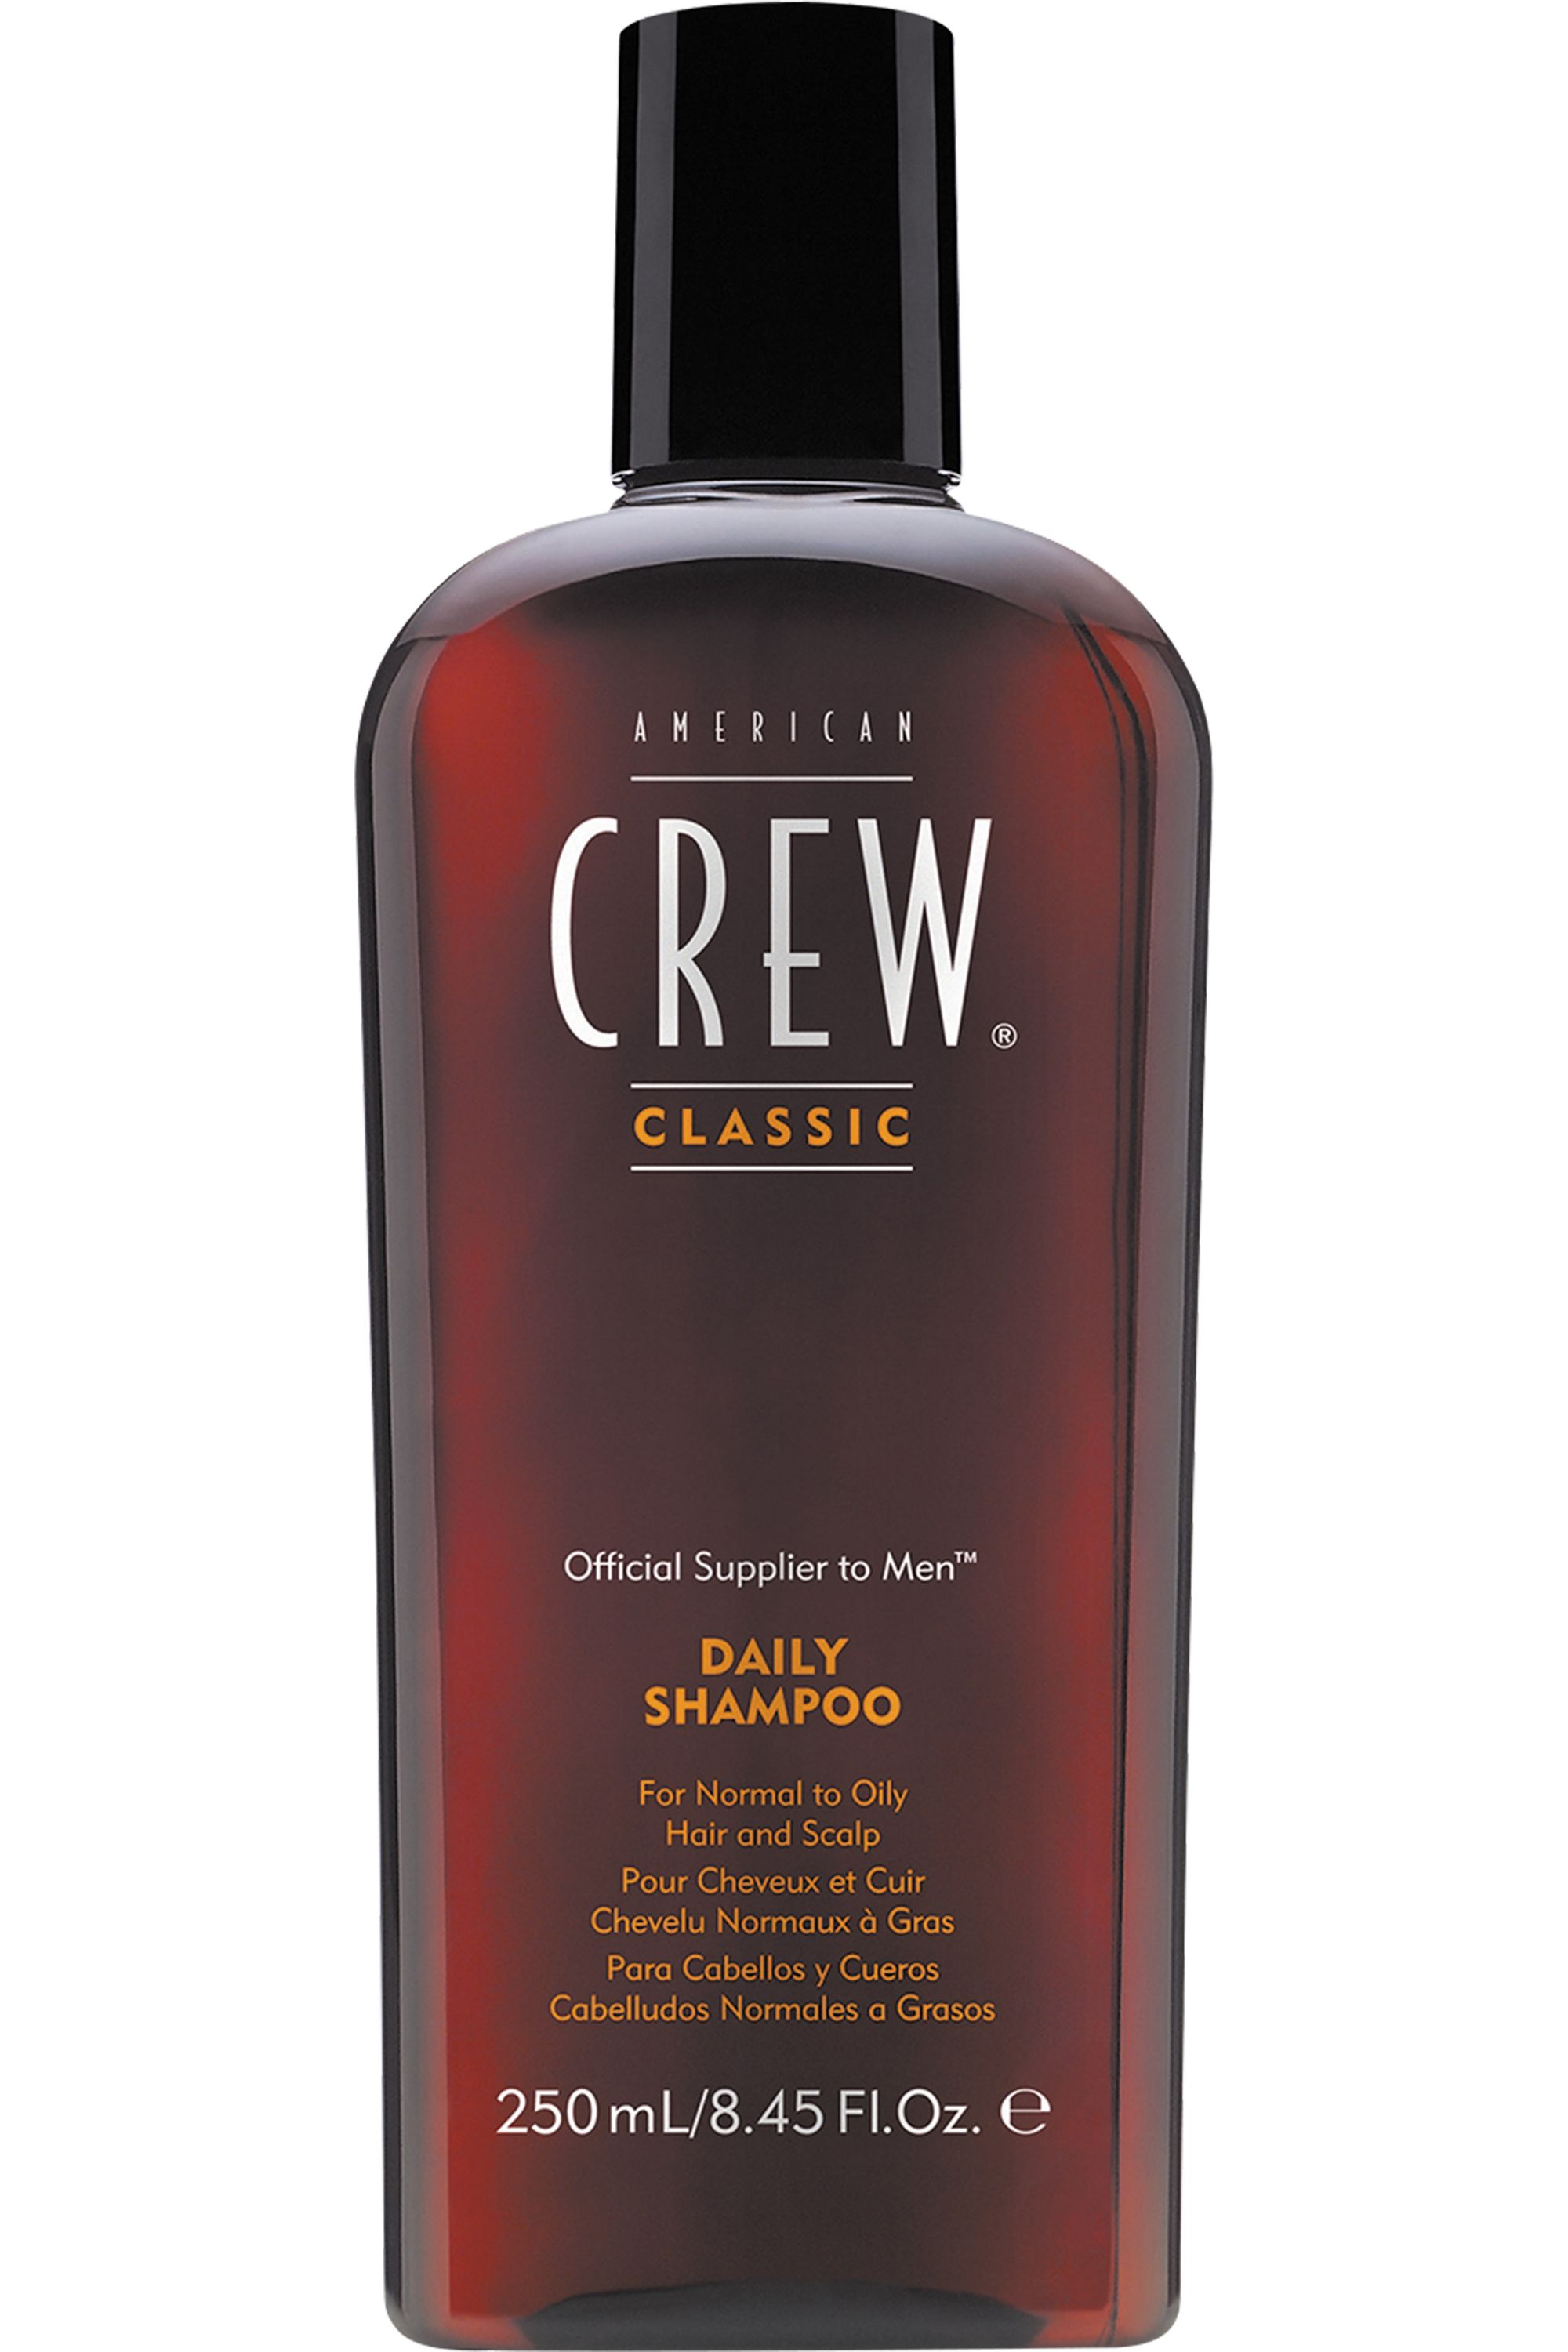 Blissim : American Crew - Shampooing hydratant cheveux normaux à secs - Shampooing hydratant cheveux normaux à secs